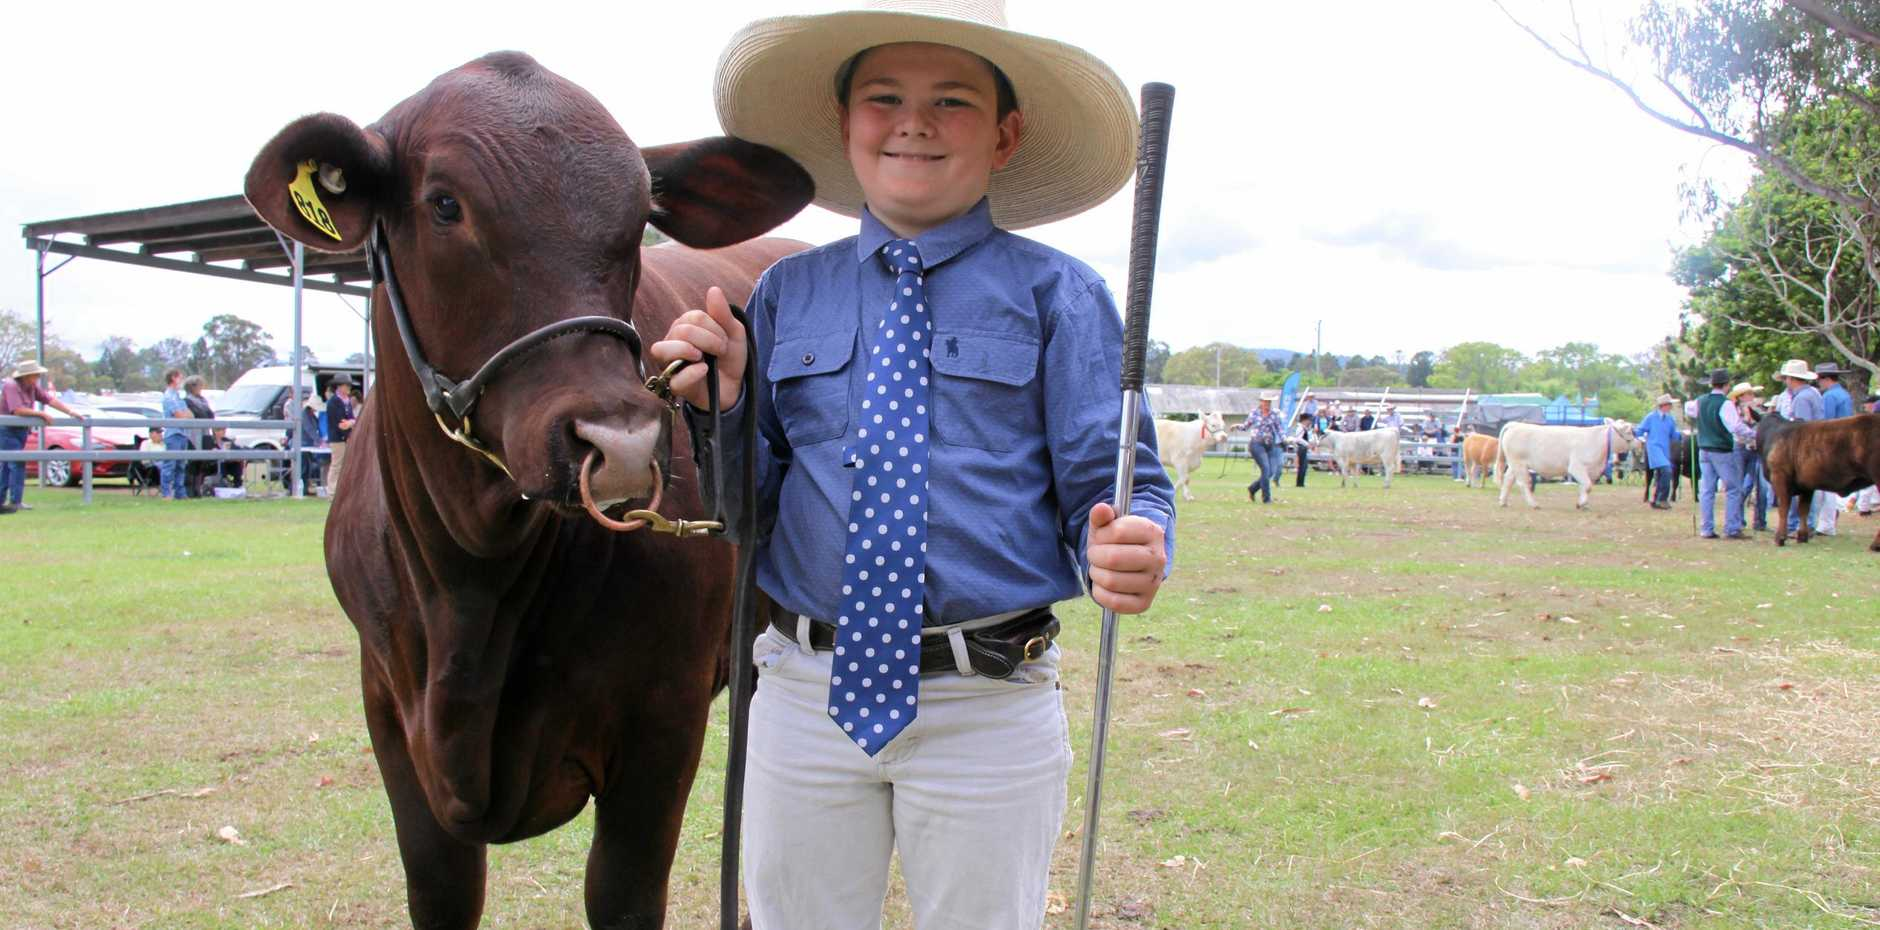 KYOGLE SHOW: Daniel Pryor, 10, is making sure the future of the Australian cattle industry was in good hands.